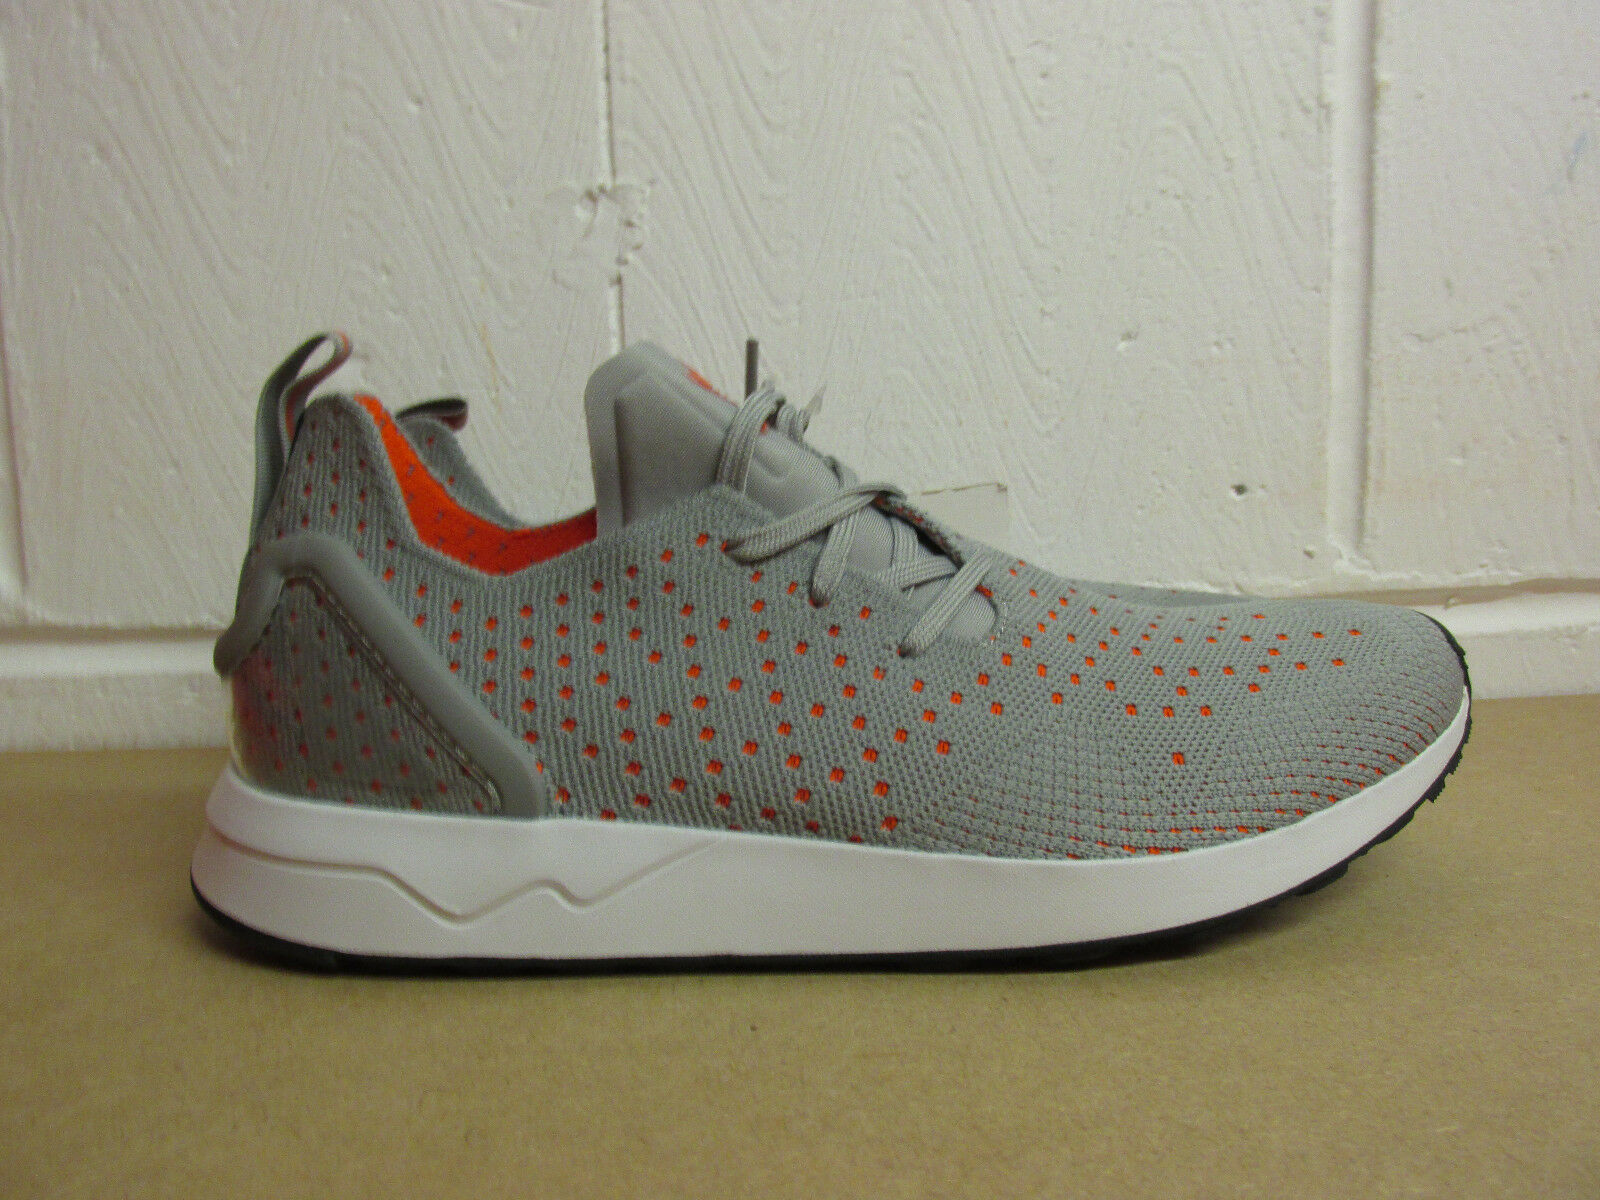 Adidas originals ZX Flux ADV ASYM PK mens S76370 trainers sneakers SAMPLE